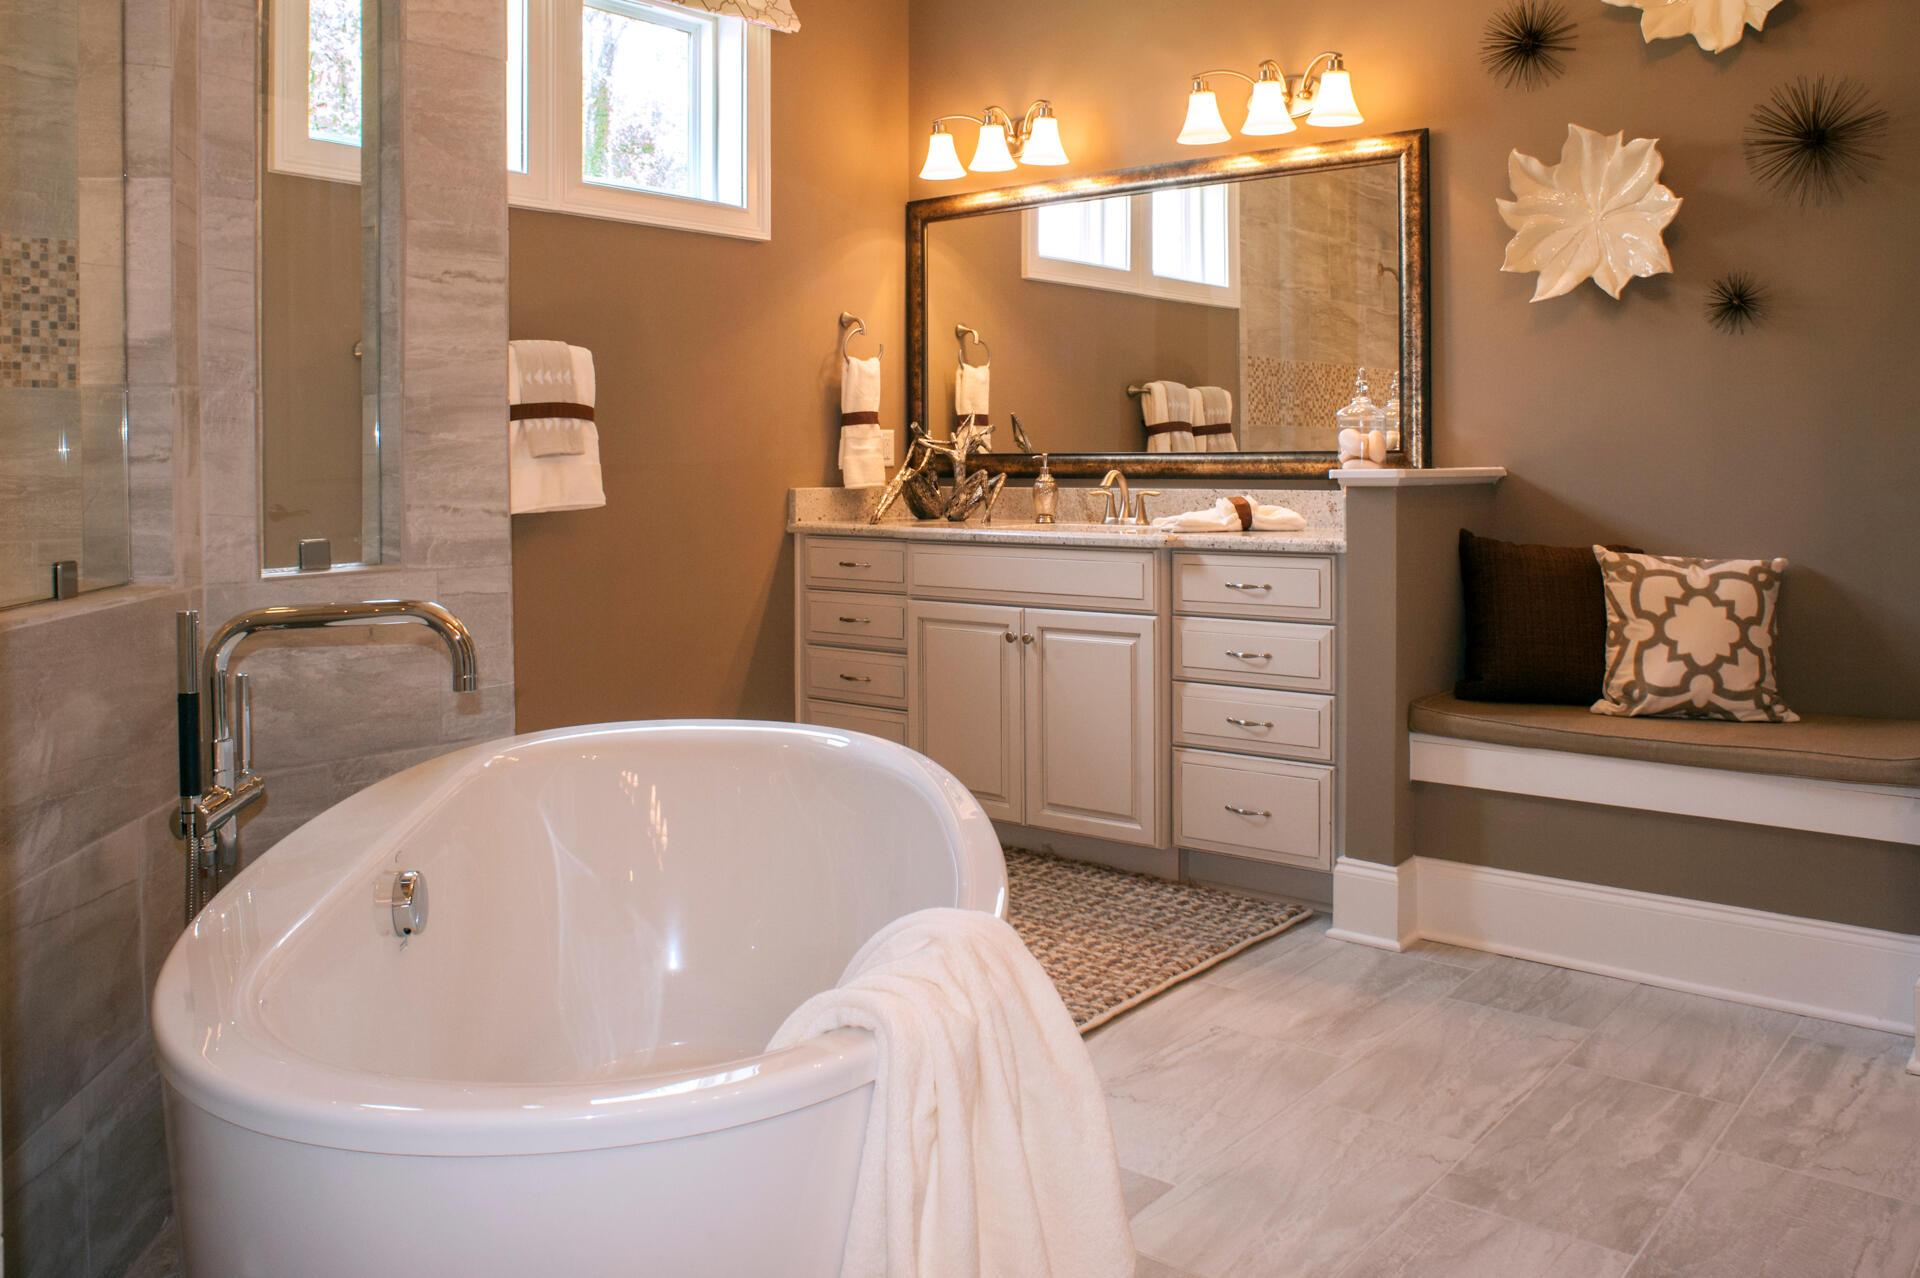 Bathroom featured in the Colinas II By Drees Homes in Nashville, TN